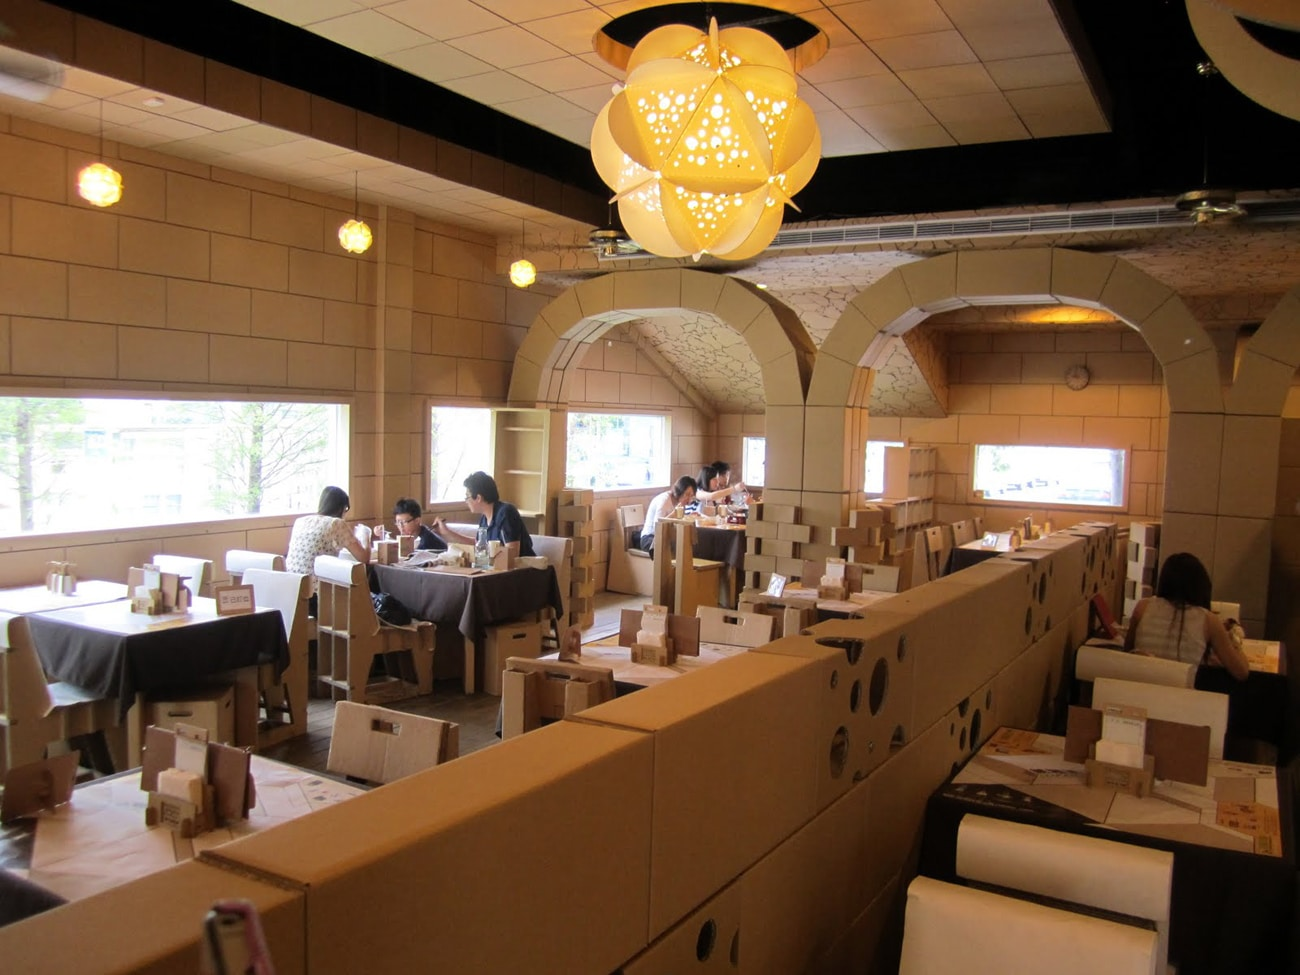 Cardboard Design: An Elegant Restaurant Created From Cardboard